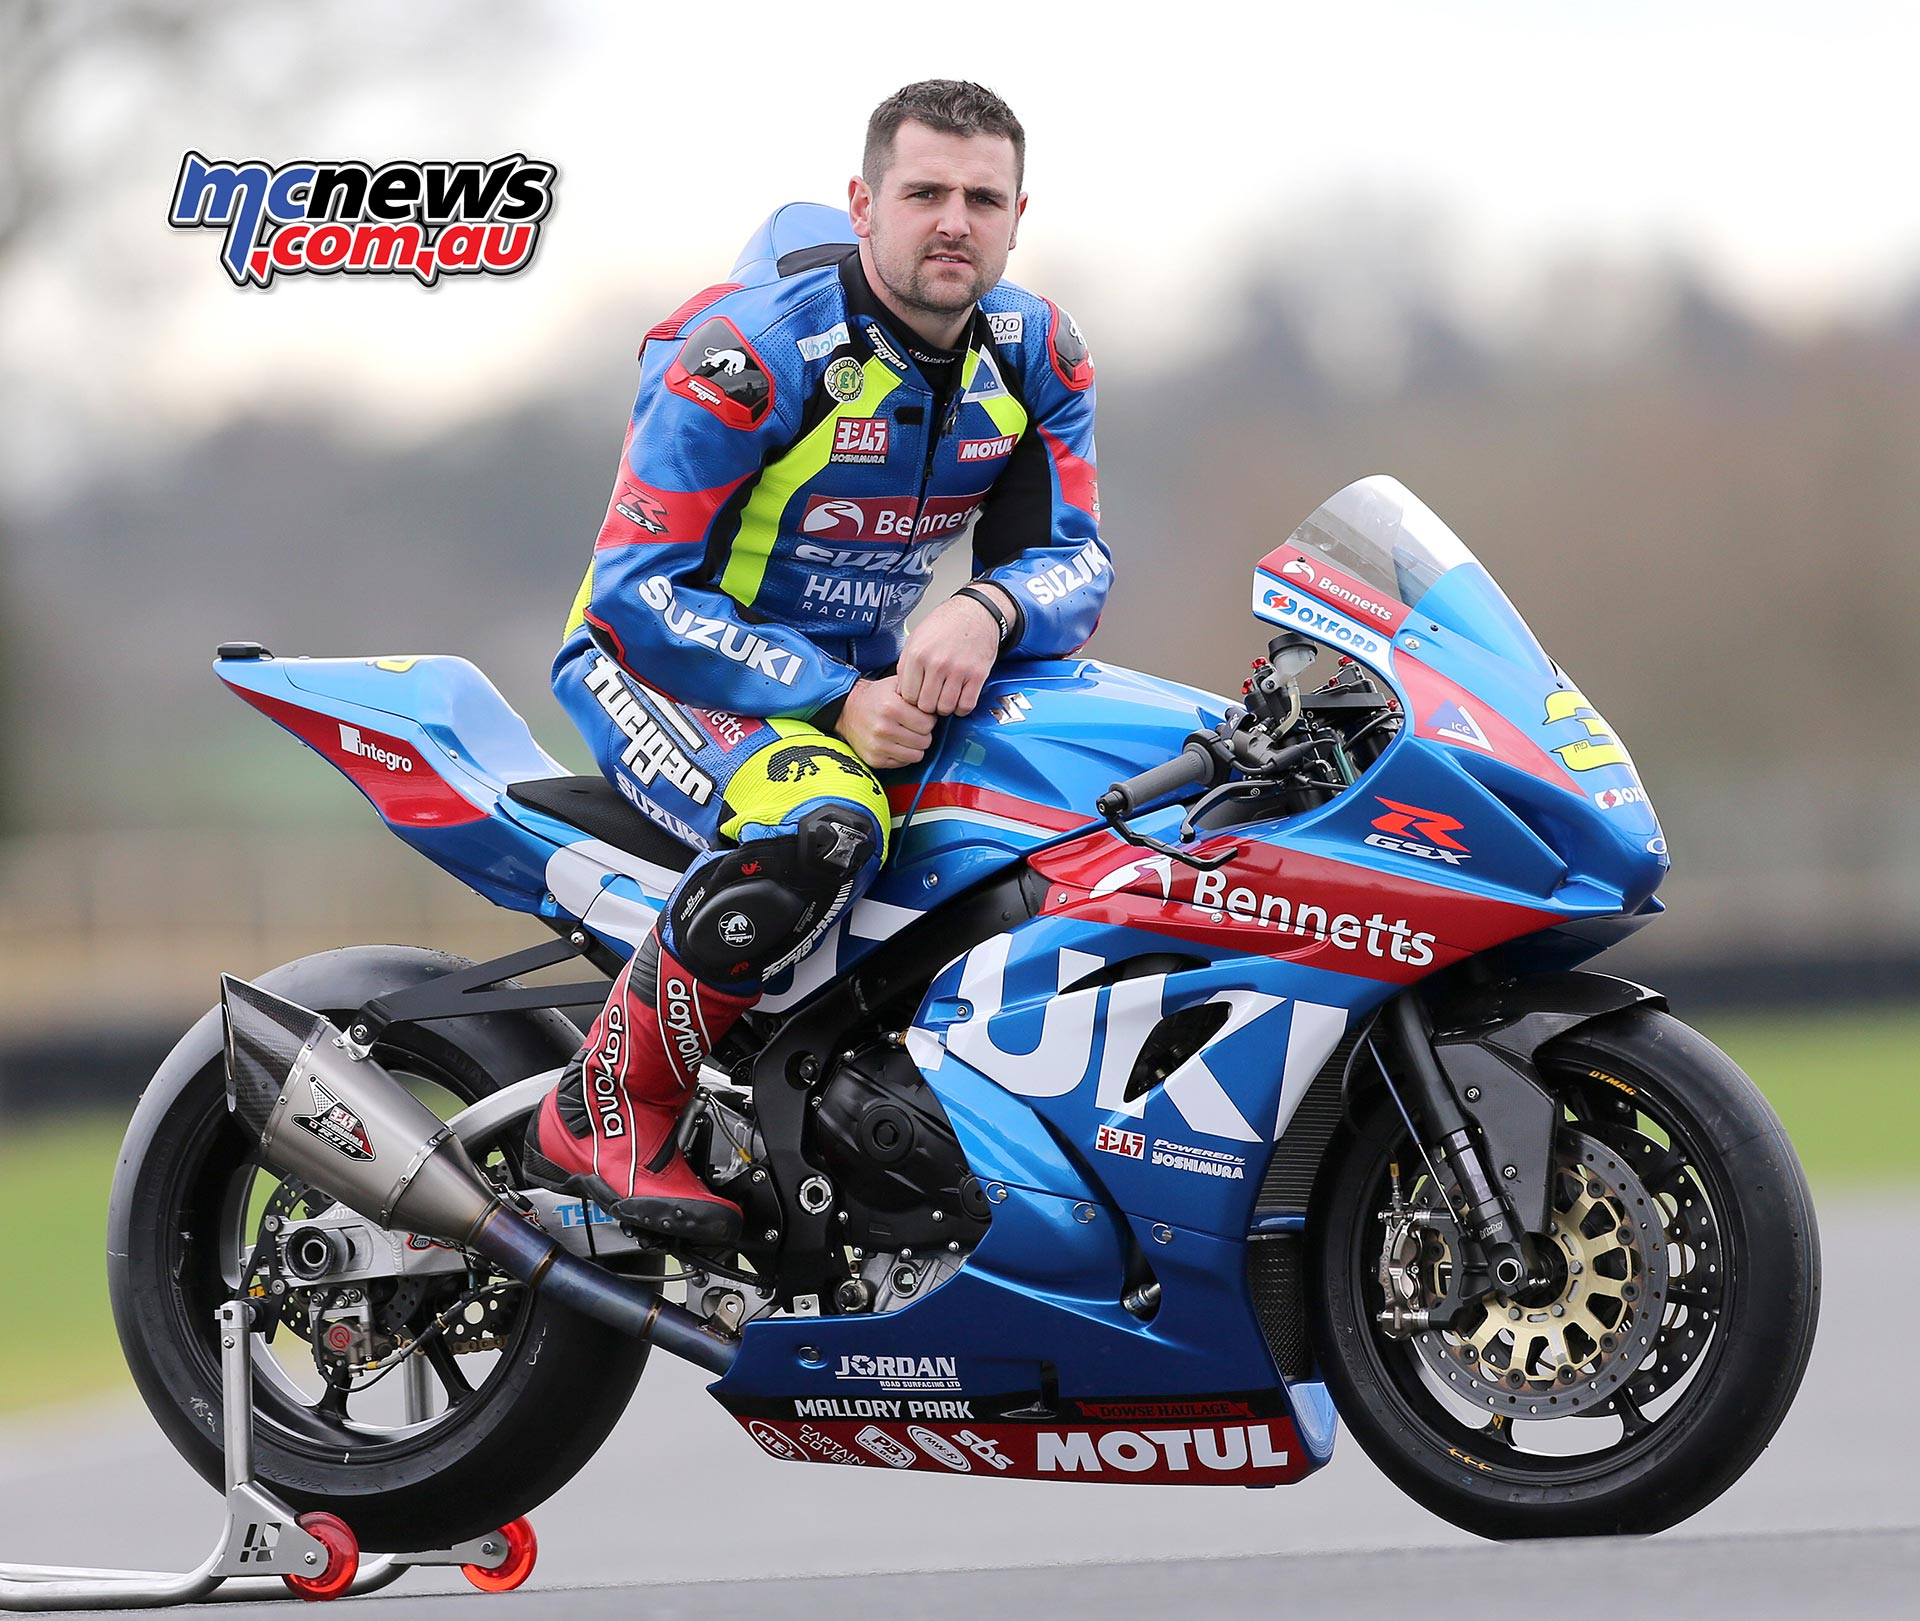 TT 2017 - Michael Dunlop to contest Isle of Man TT, North West 200 and Ulster Grand Prix on Suzuki GSX-R1000R